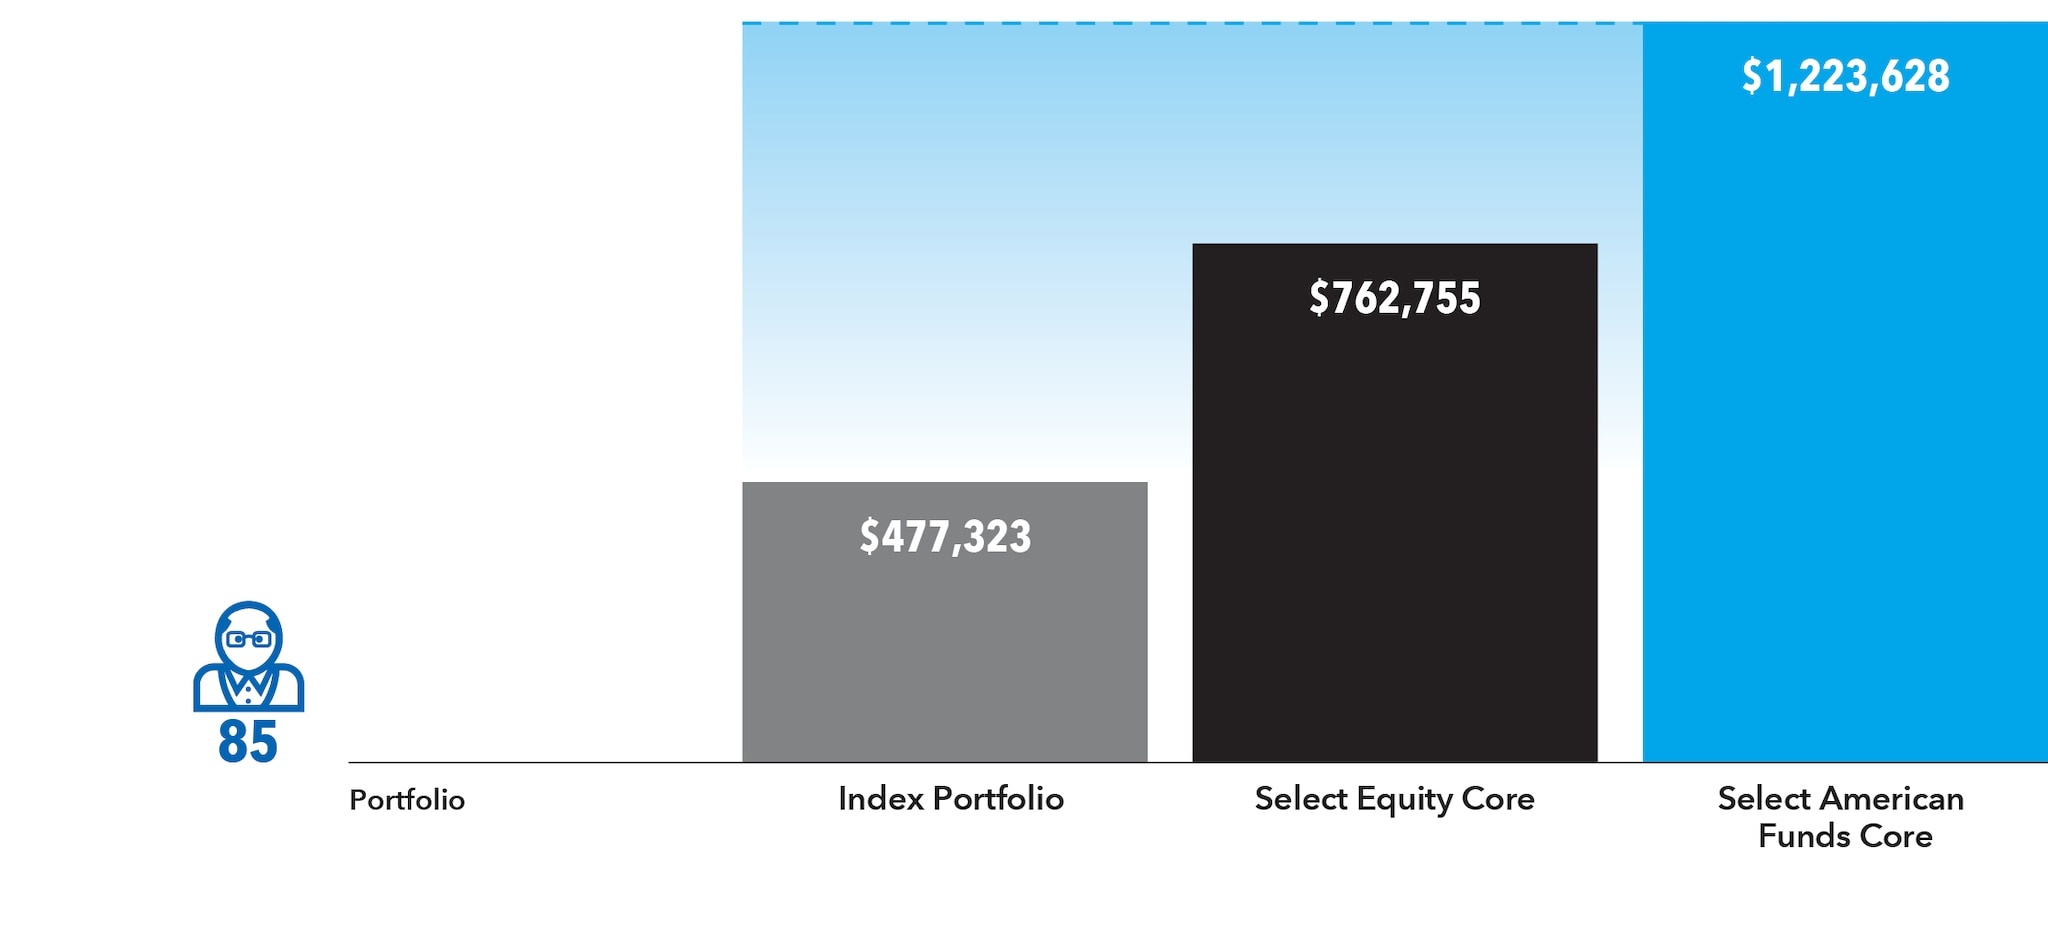 Chart shows the balance of the three hypothetical portfolios after 20 years of withdrawals.